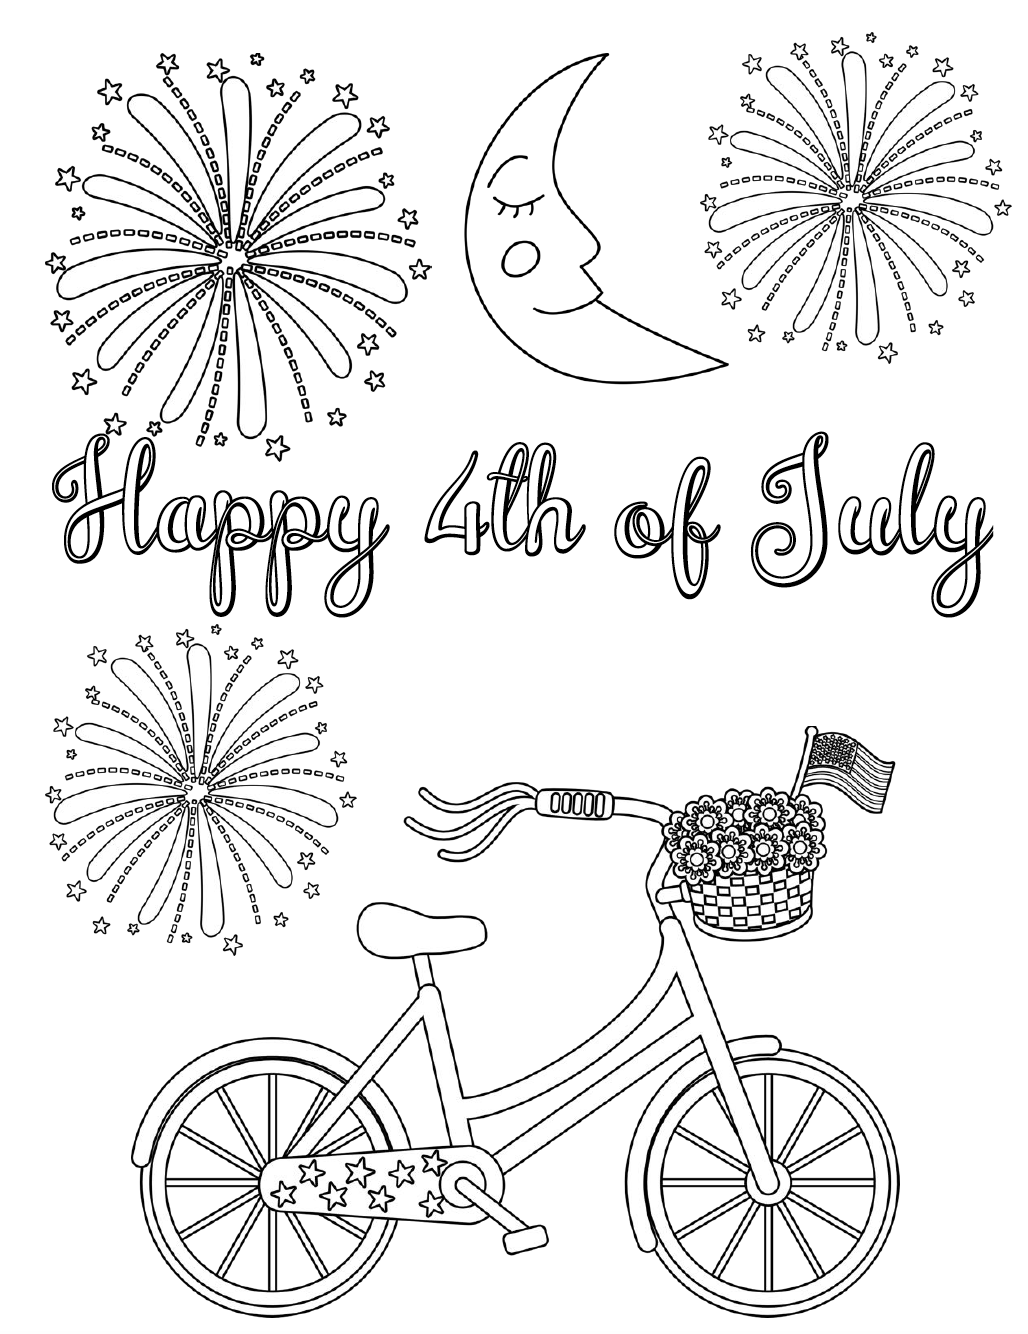 Free Printable 4th of July Coloring Pages | Paper Trail Design | 1334x1028